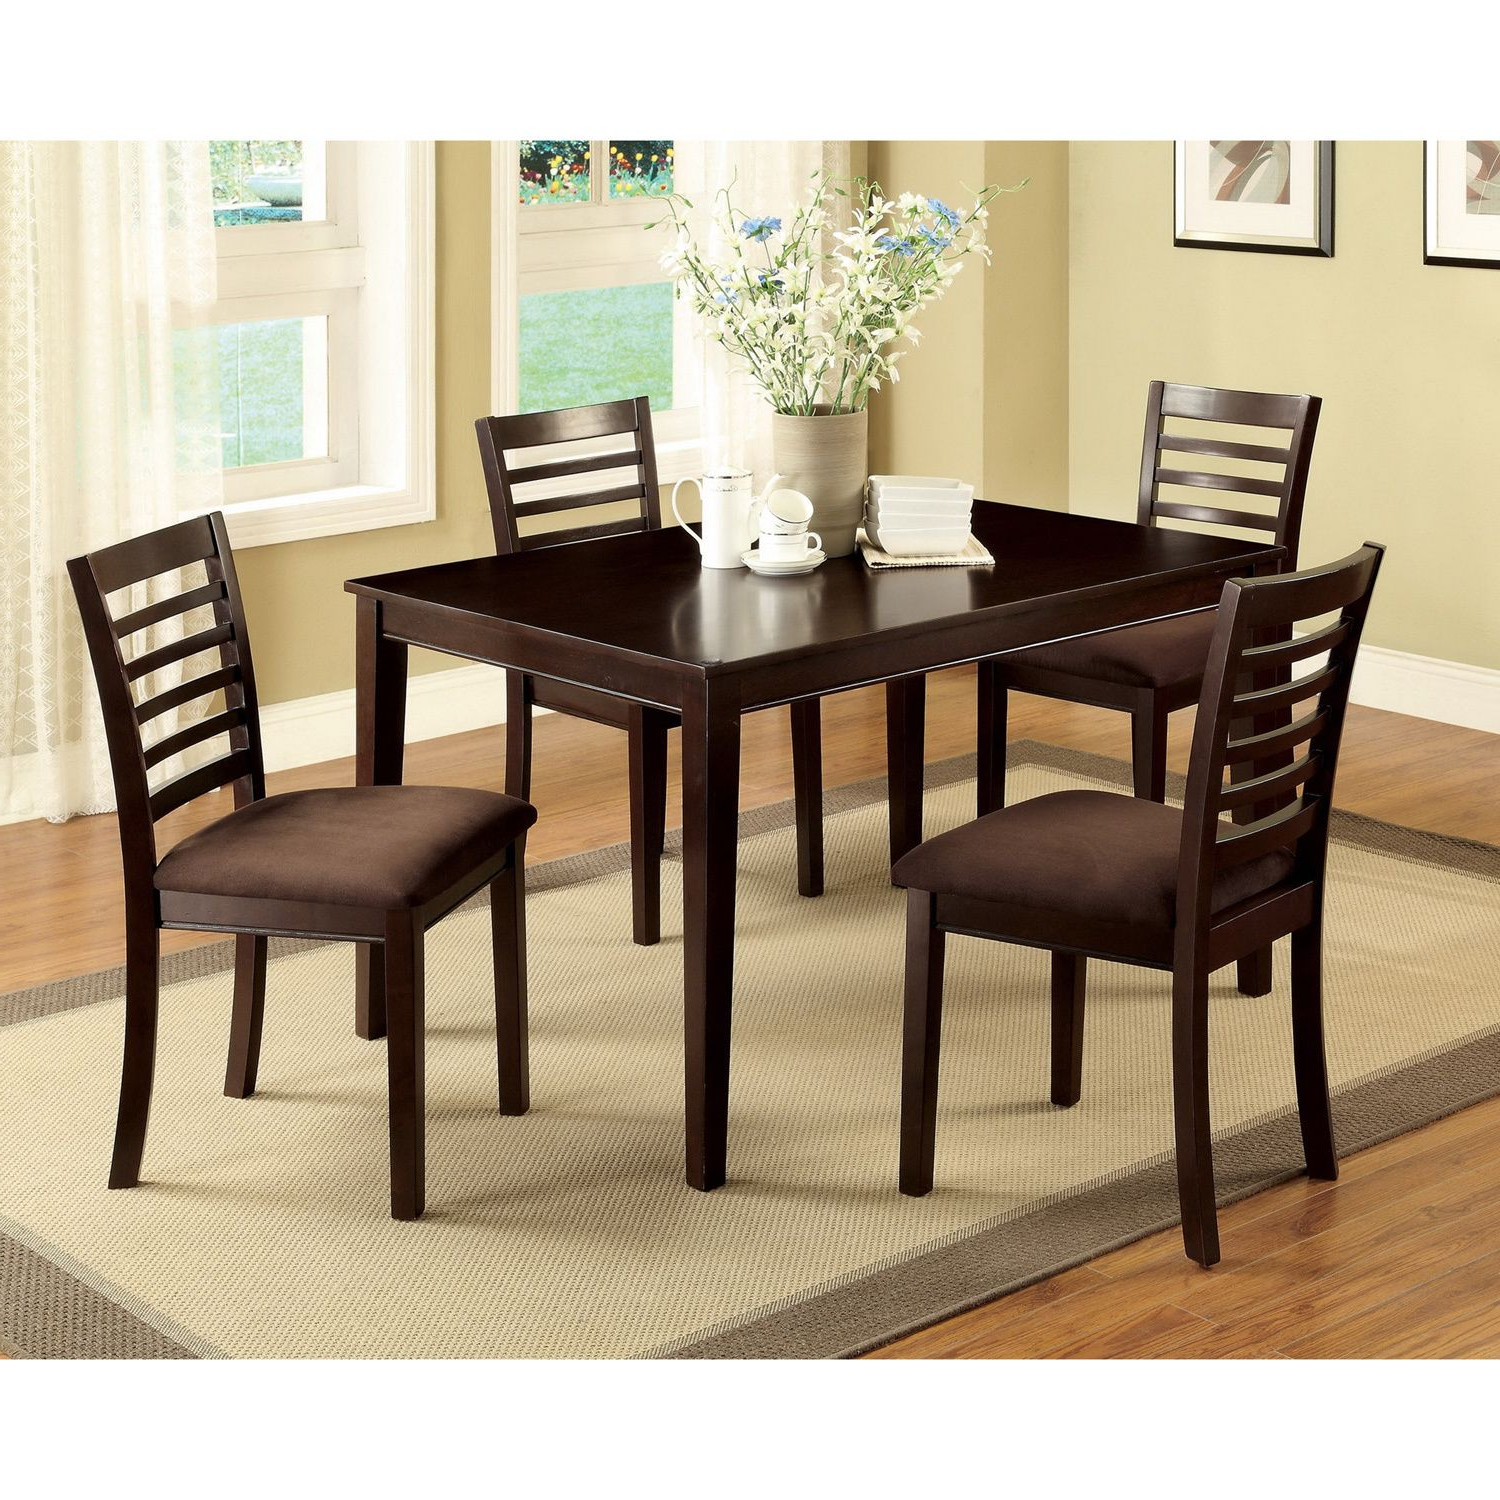 Most Recent Atwood Transitional Square Dining Tables Pertaining To The Eazton 5 Pc Dining Set Is Perfect For Compact Kitchen Or (View 7 of 25)